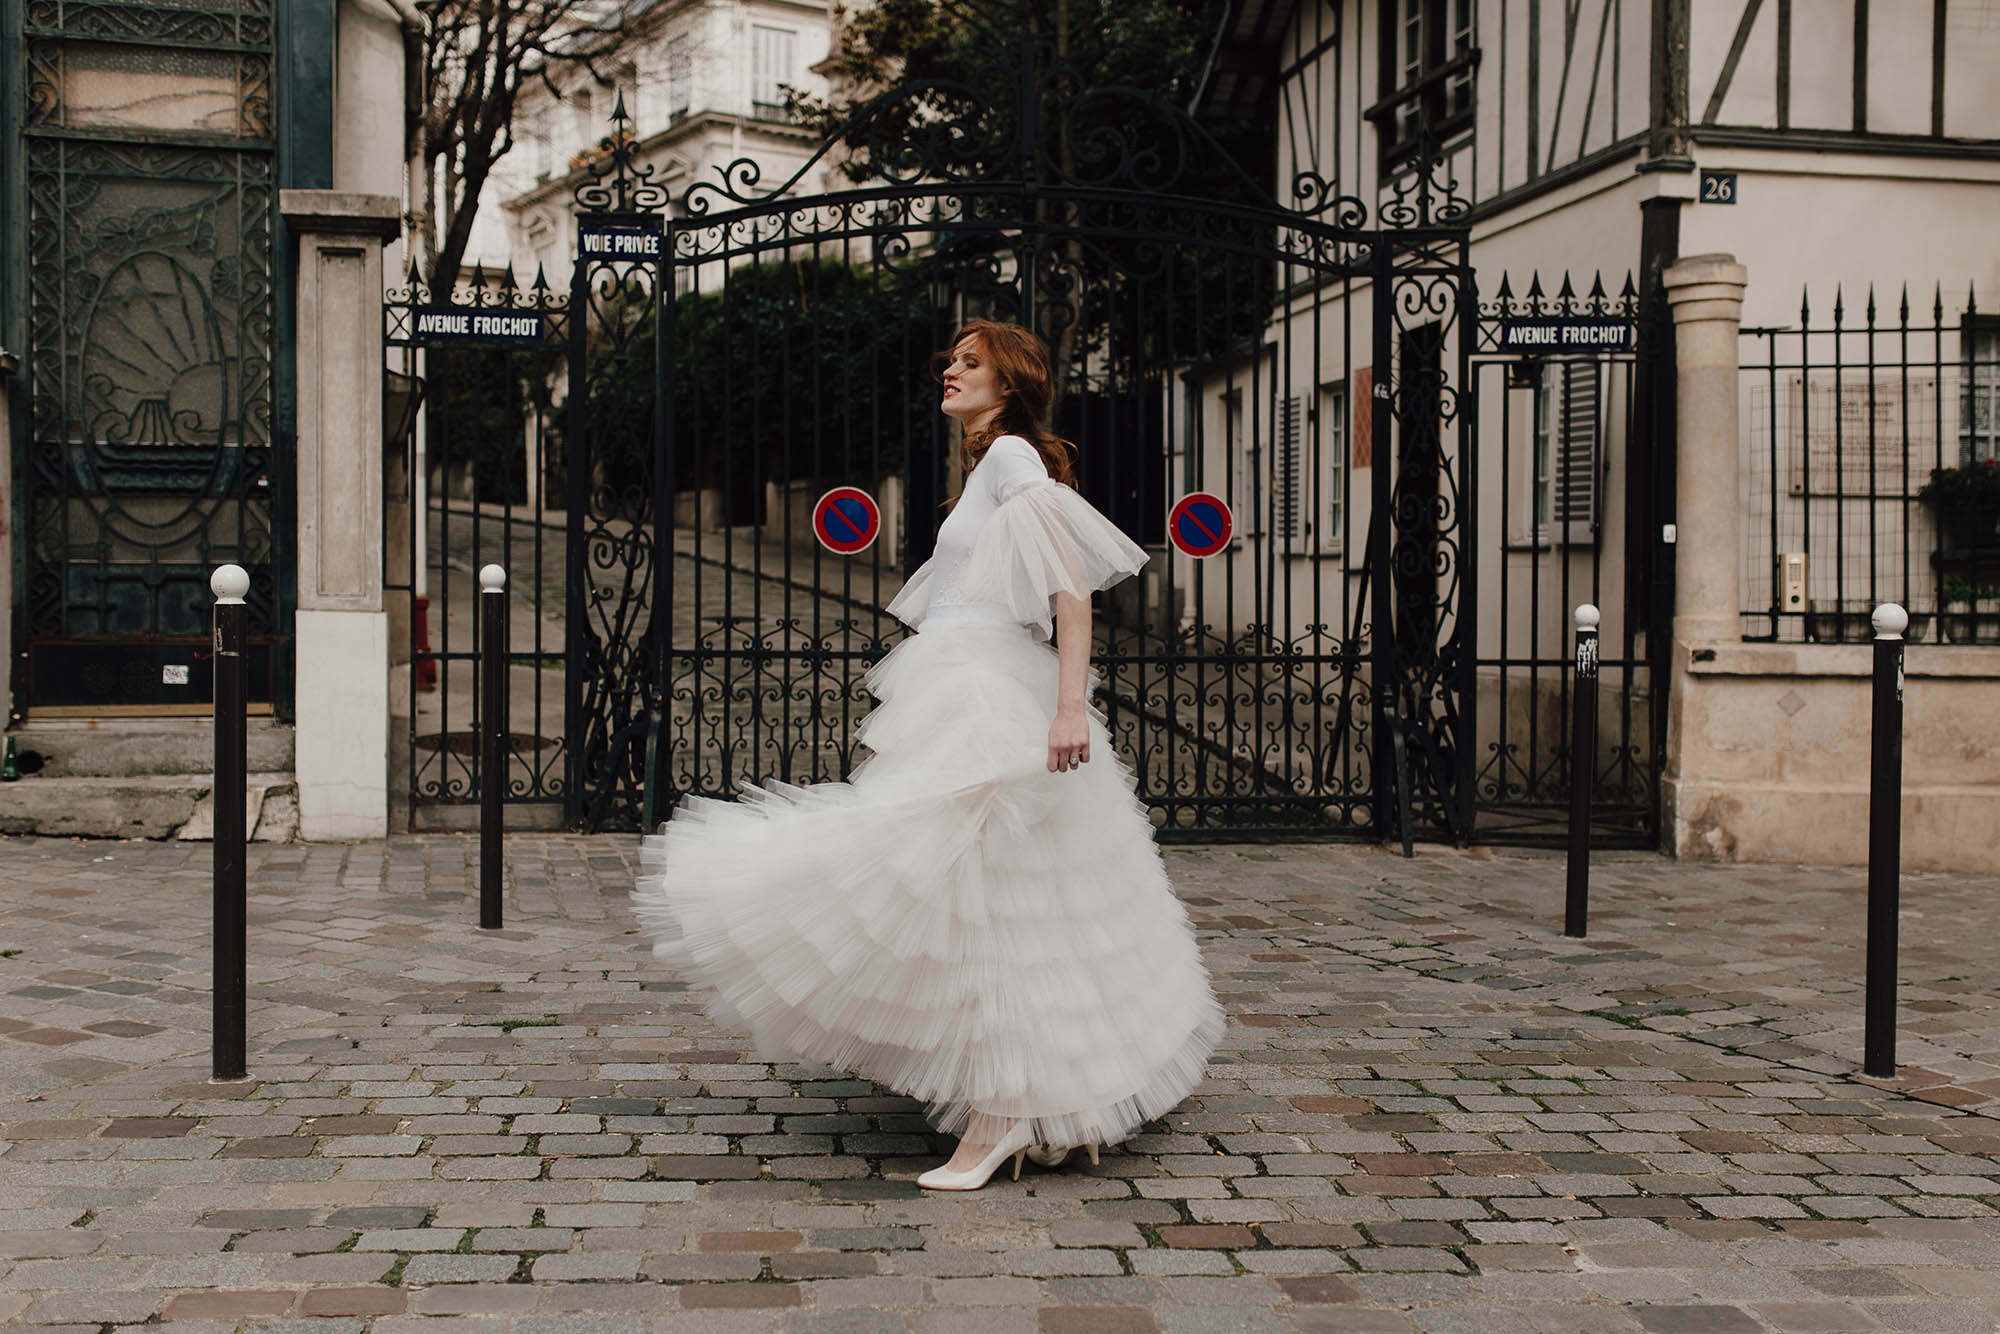 youmademydayphotography-destination-wedding-photographer-david-purves-boheme-rock-paris-web-146